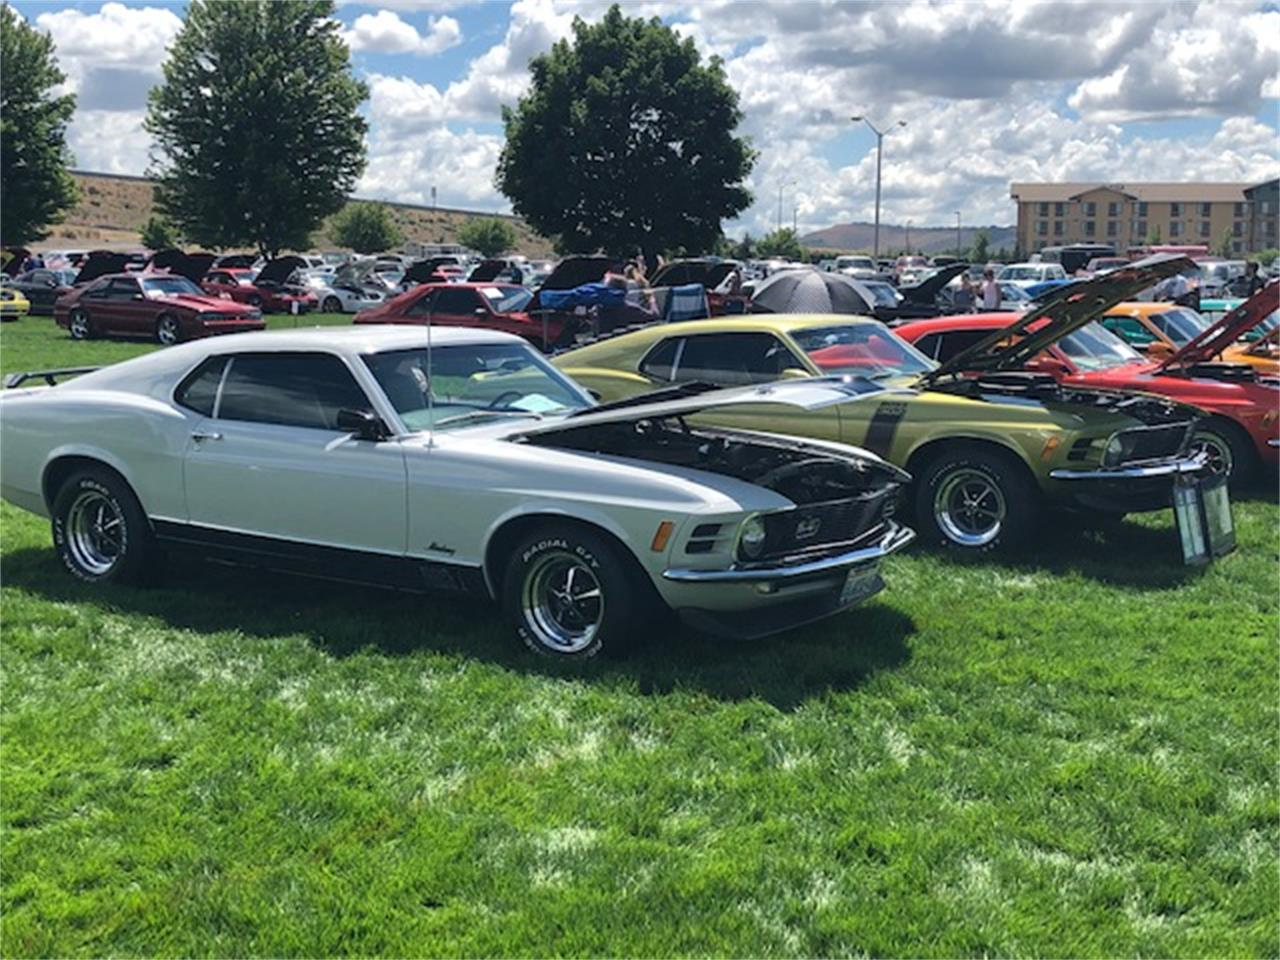 Large Picture of 1970 Ford Mustang Mach 1 Offered by a Private Seller - QWA4